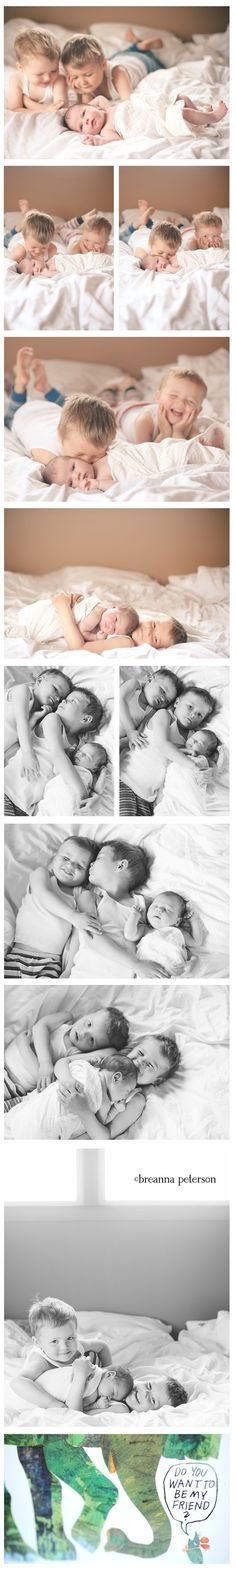 lifestyle newborn shoot with siblings-can't wait to do this in a couple weeks!